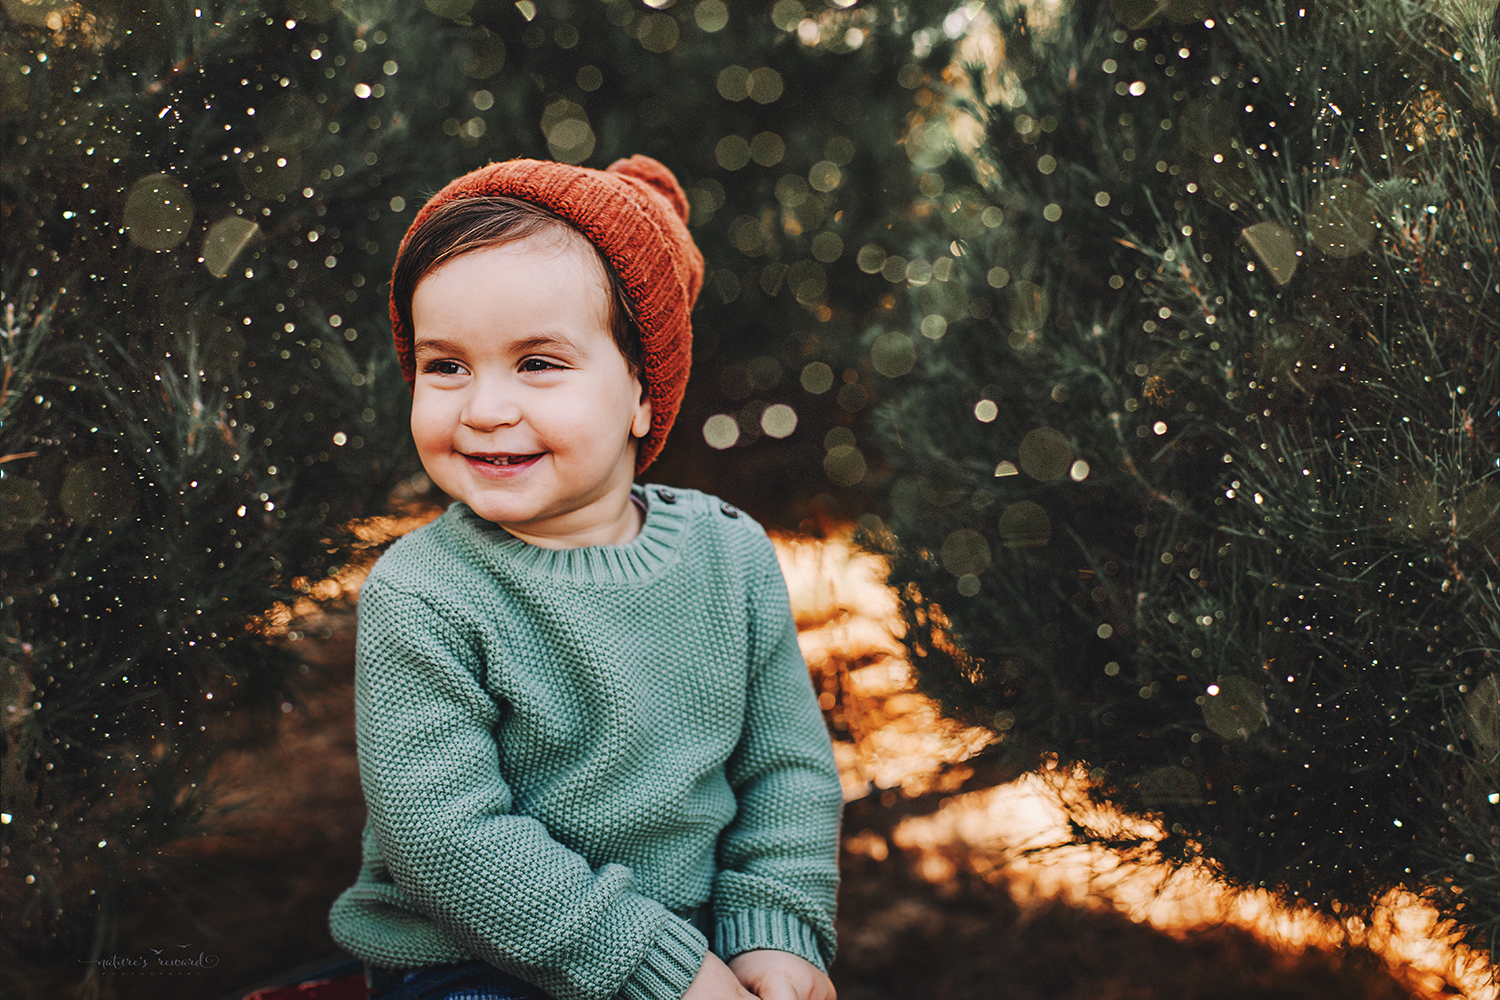 So cute- A Christmas tree farm portrait by Nature's Reward Photography